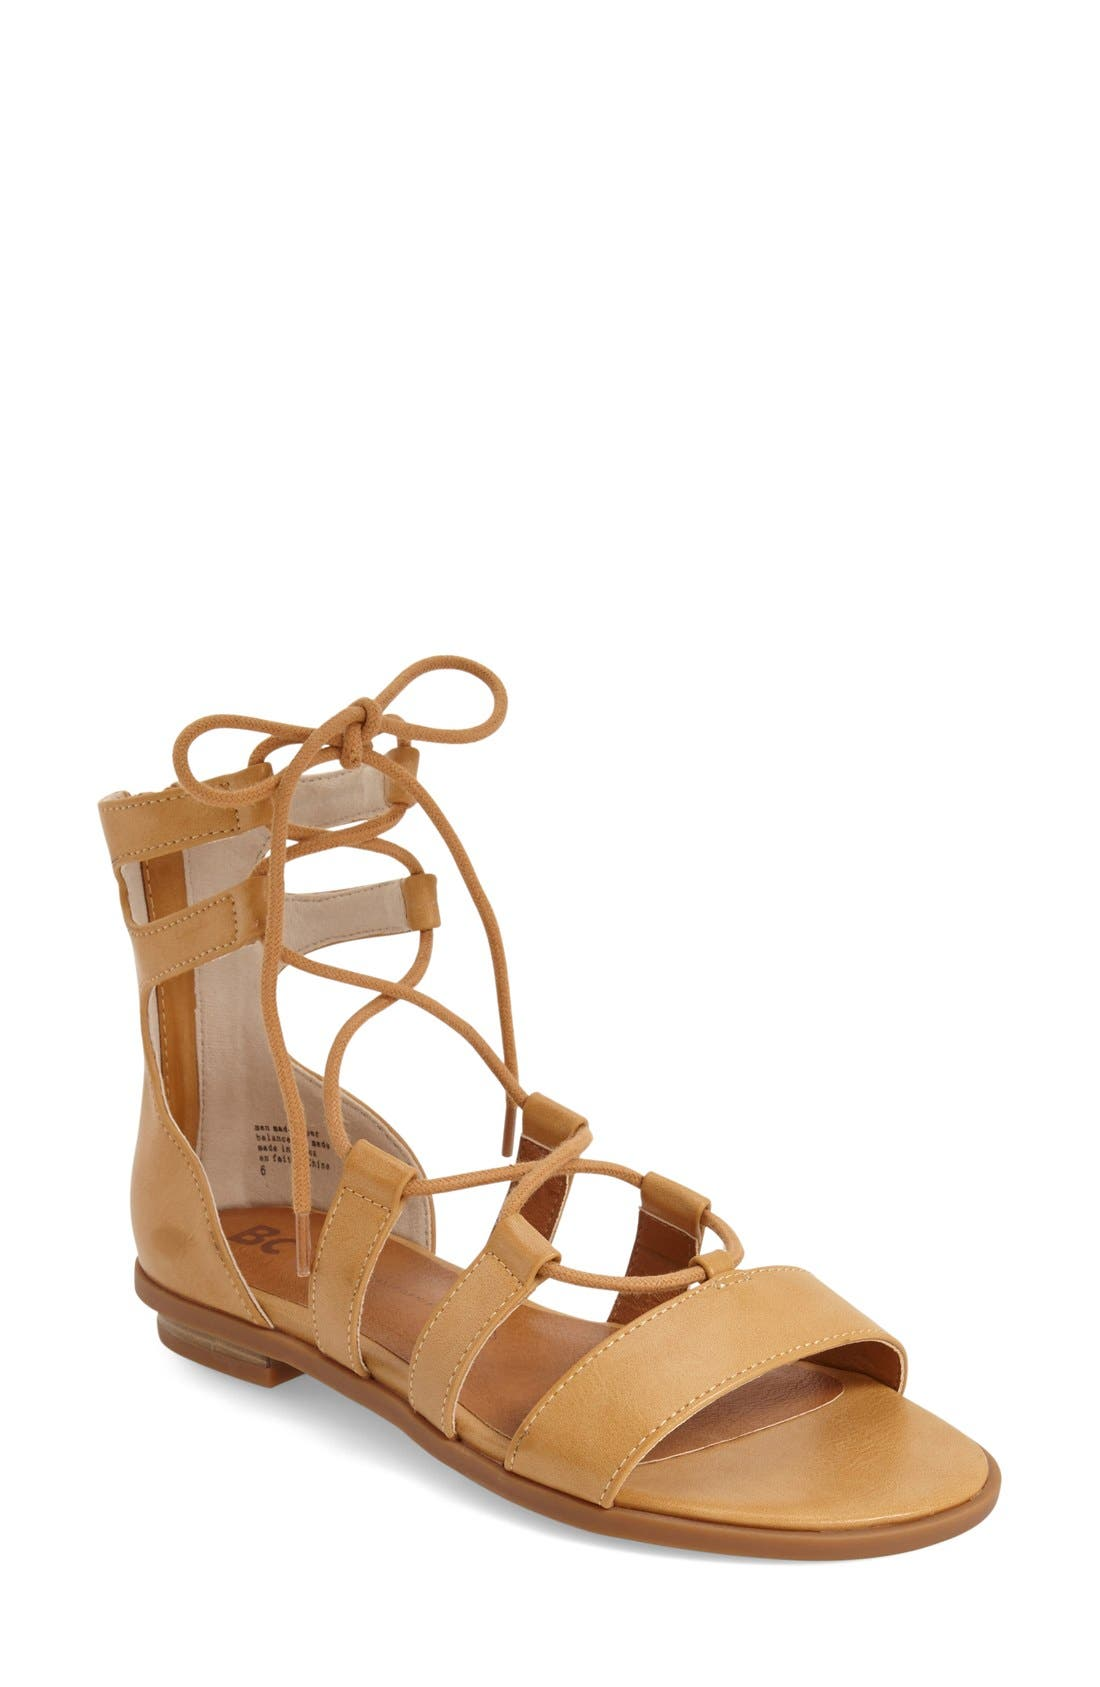 Main Image - BC Footwear 'Pocket Size' Lace-Up Flat Sandal (Women)